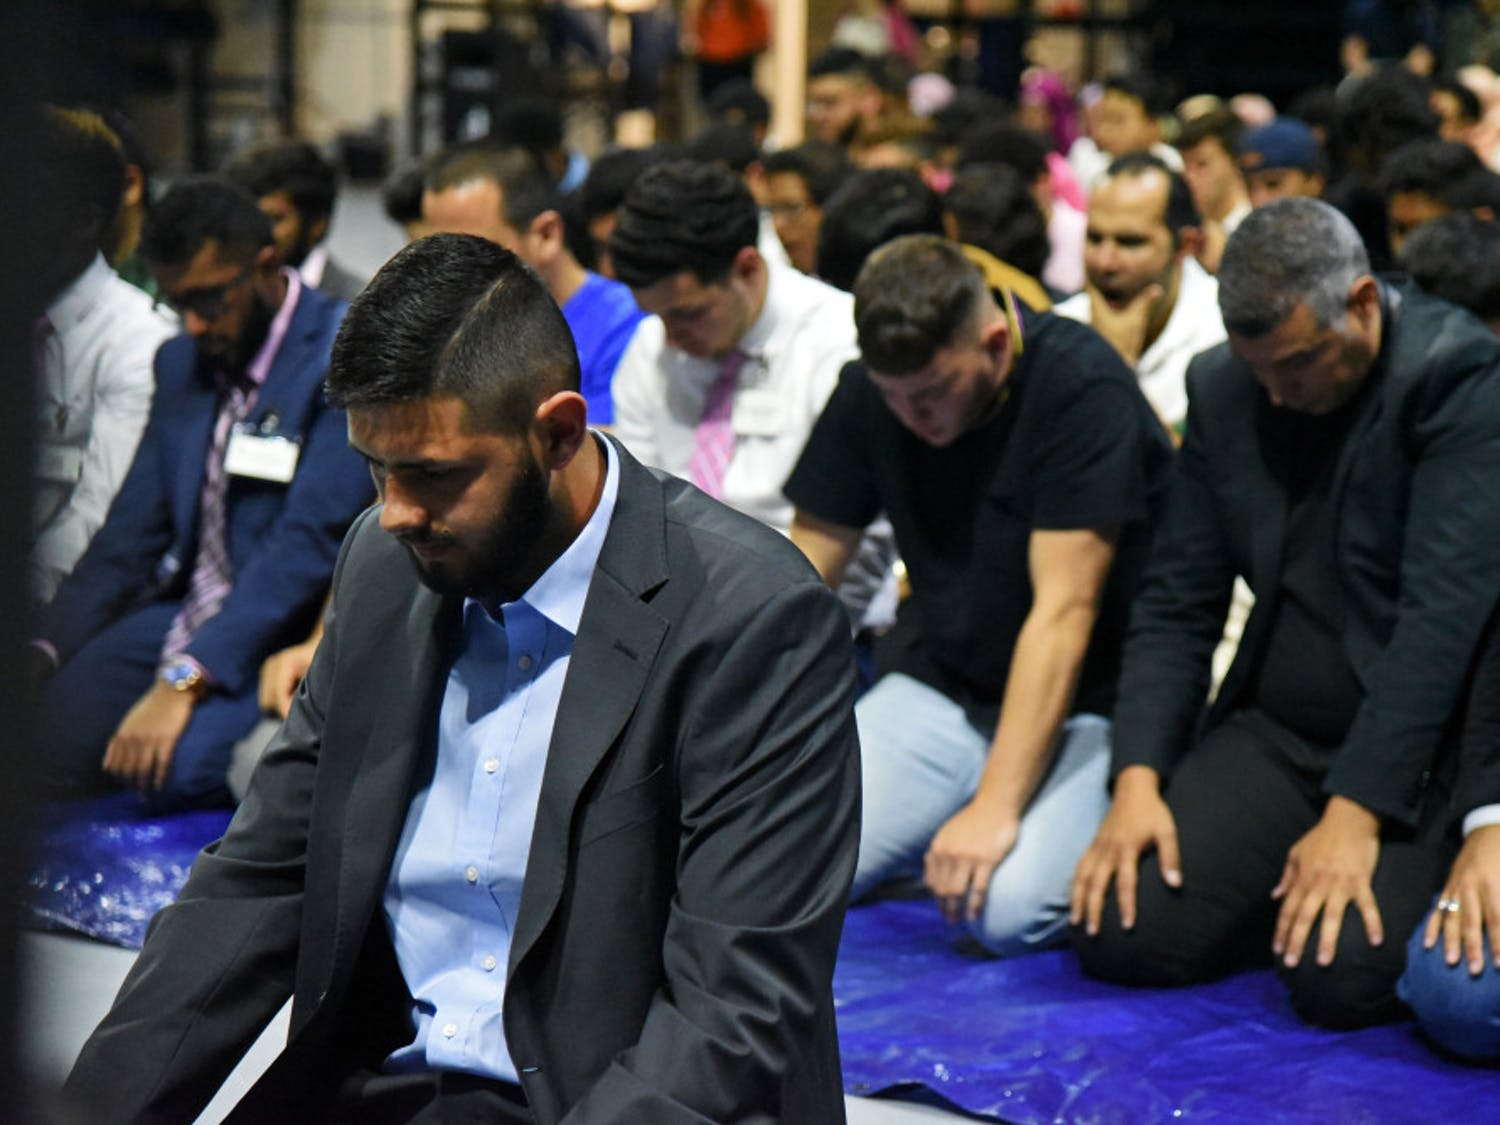 Eesaa Razzaq, an 18-year-old UF business administration freshman prays Thursday night at the Fast-A-Thon event at Stephen O'Connell Center.The event was hosted by Islam on Campus and designed to raise money for Gators for Refugee Medical Relief, a local charity dedicated to helping refugees locally and abroad, and NuDay Syria, a non-profit organization focused on bringing humanitarian aid to Syria.